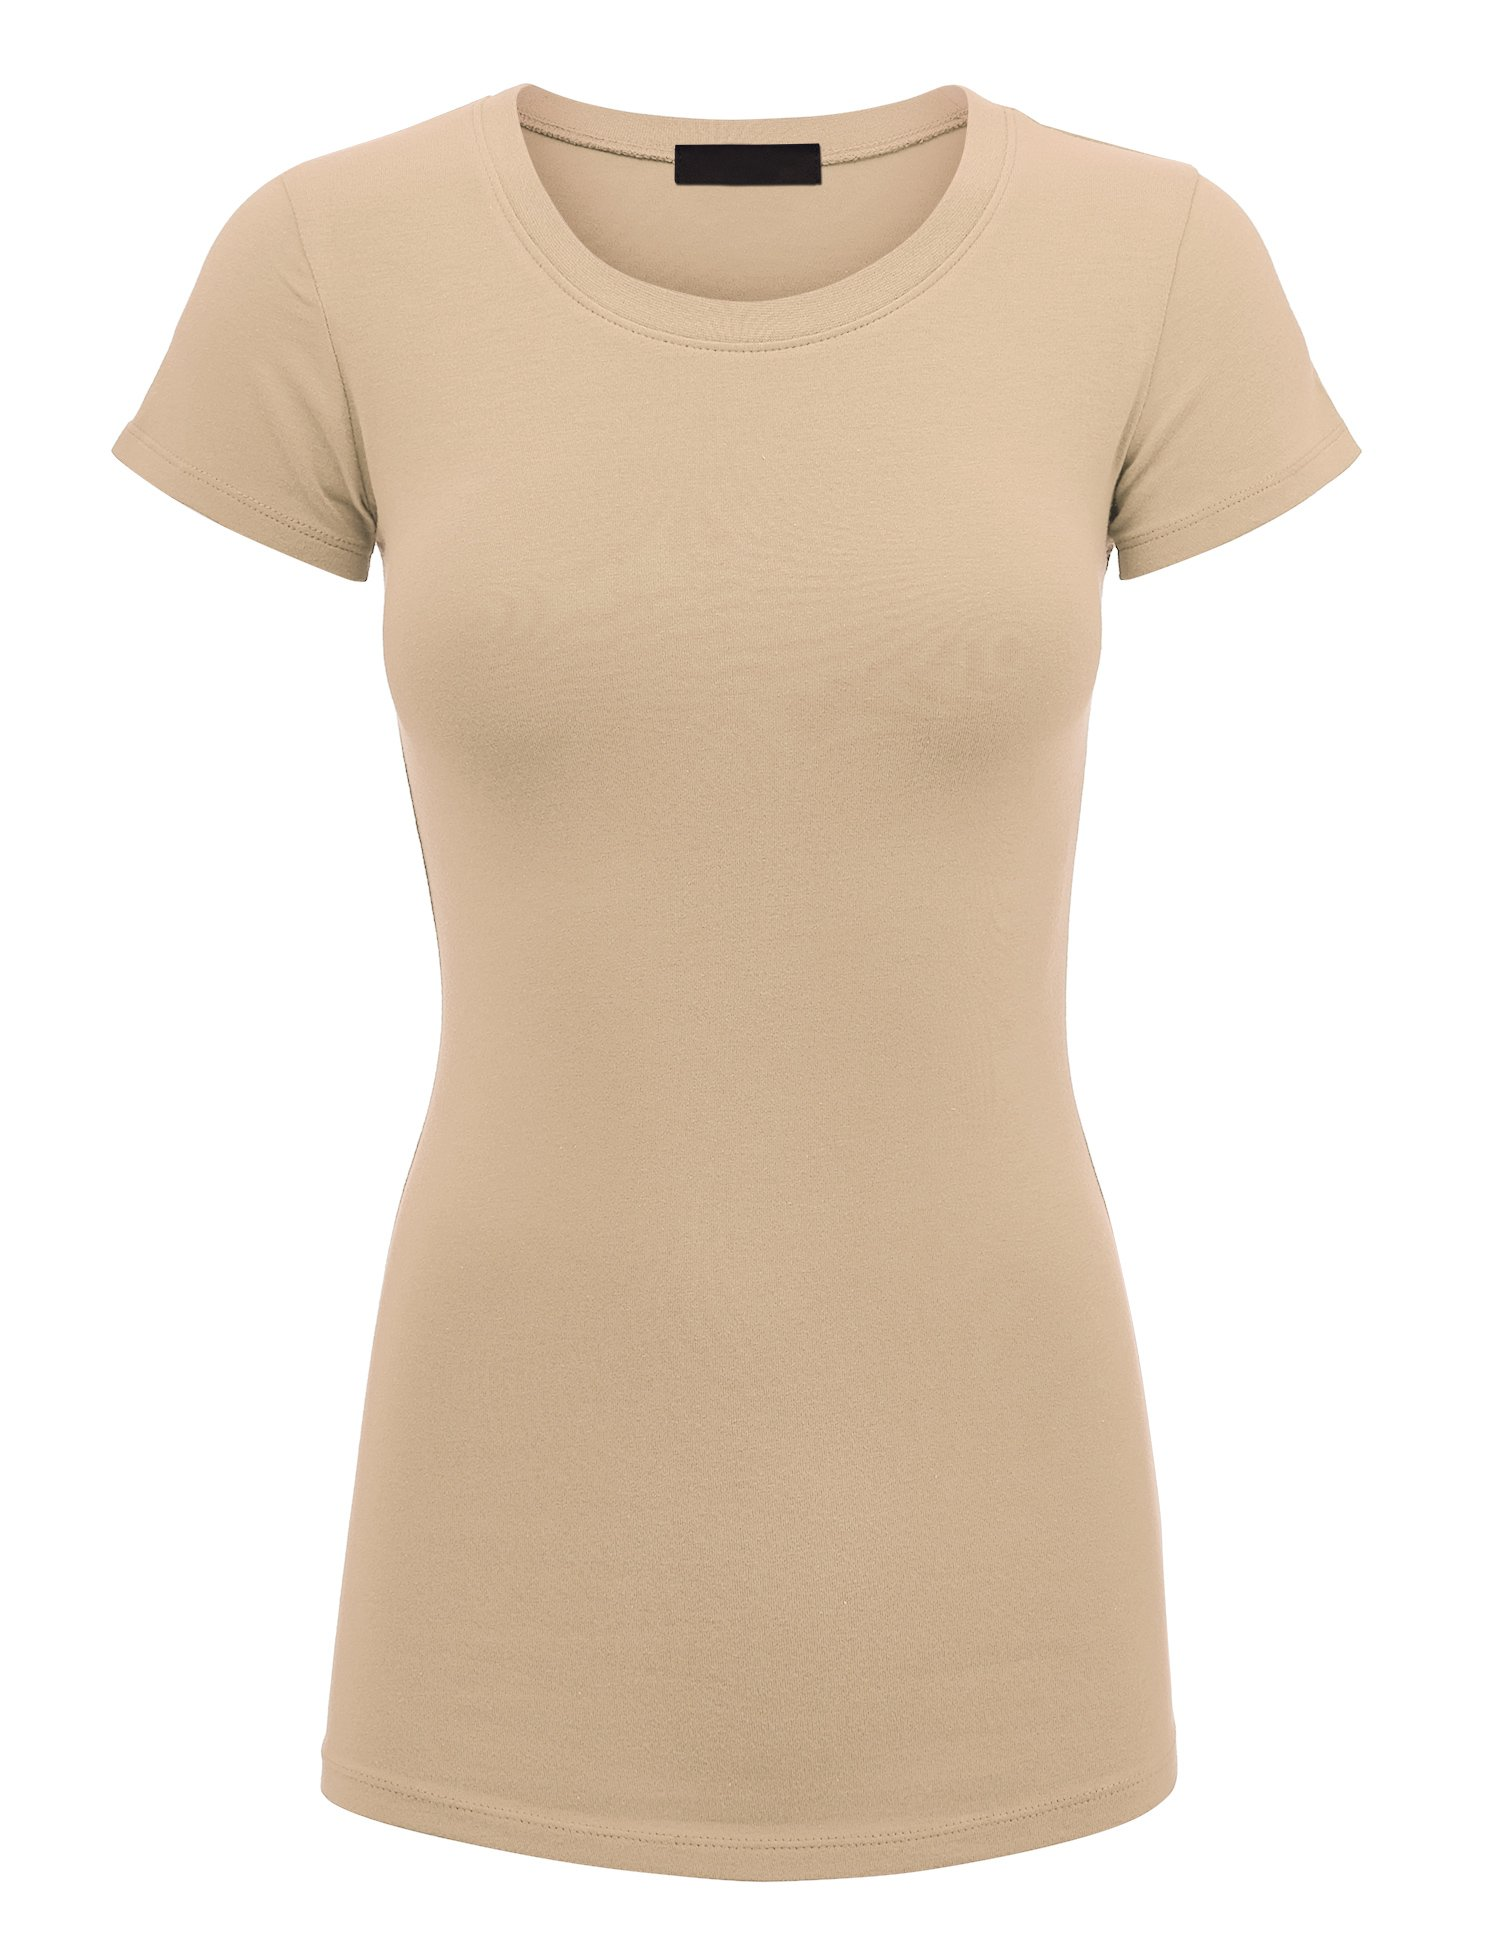 Lock and Love Womens Basic Fitted Short Sleeve Round Neck T Shirt